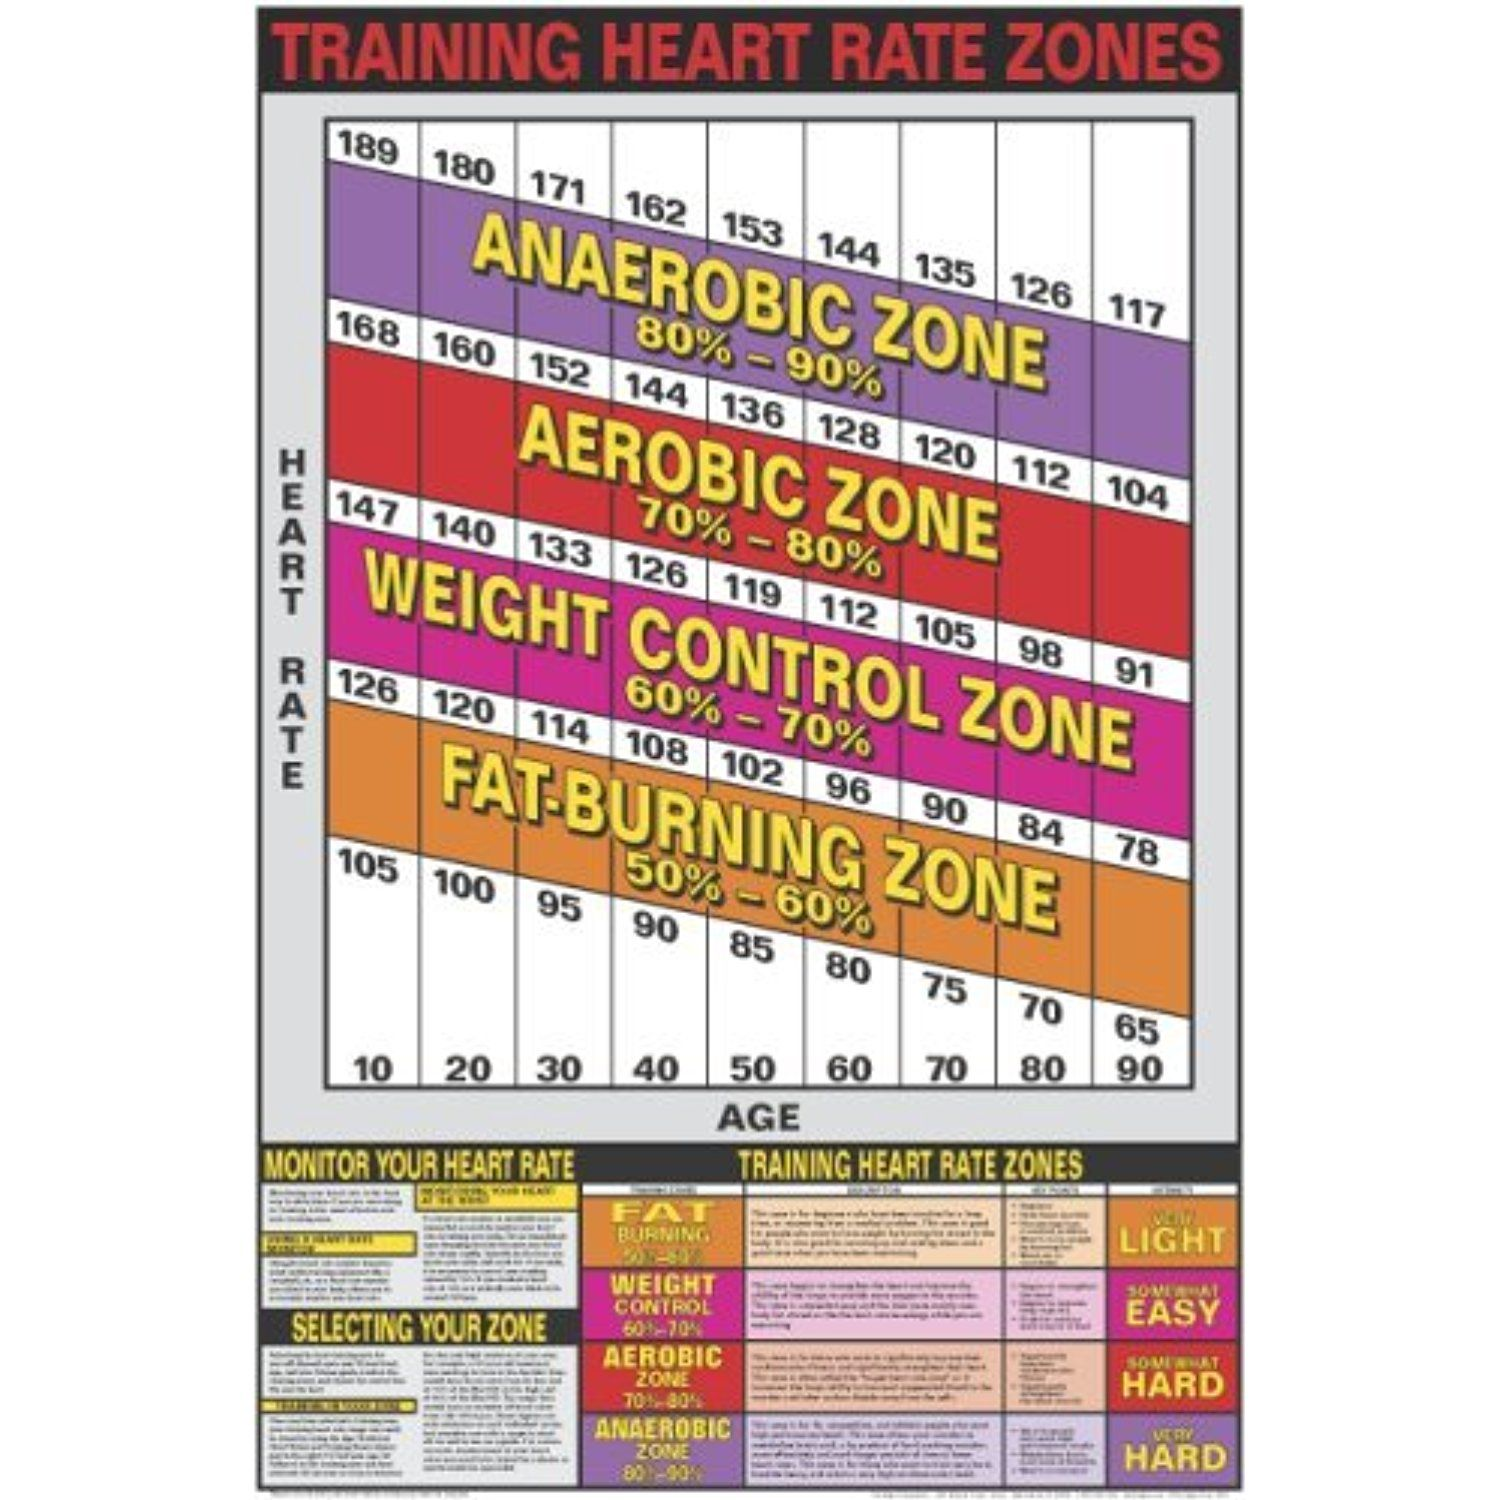 Heart Rate Zones 24 X 36 Laminated Chart Click Image To Review